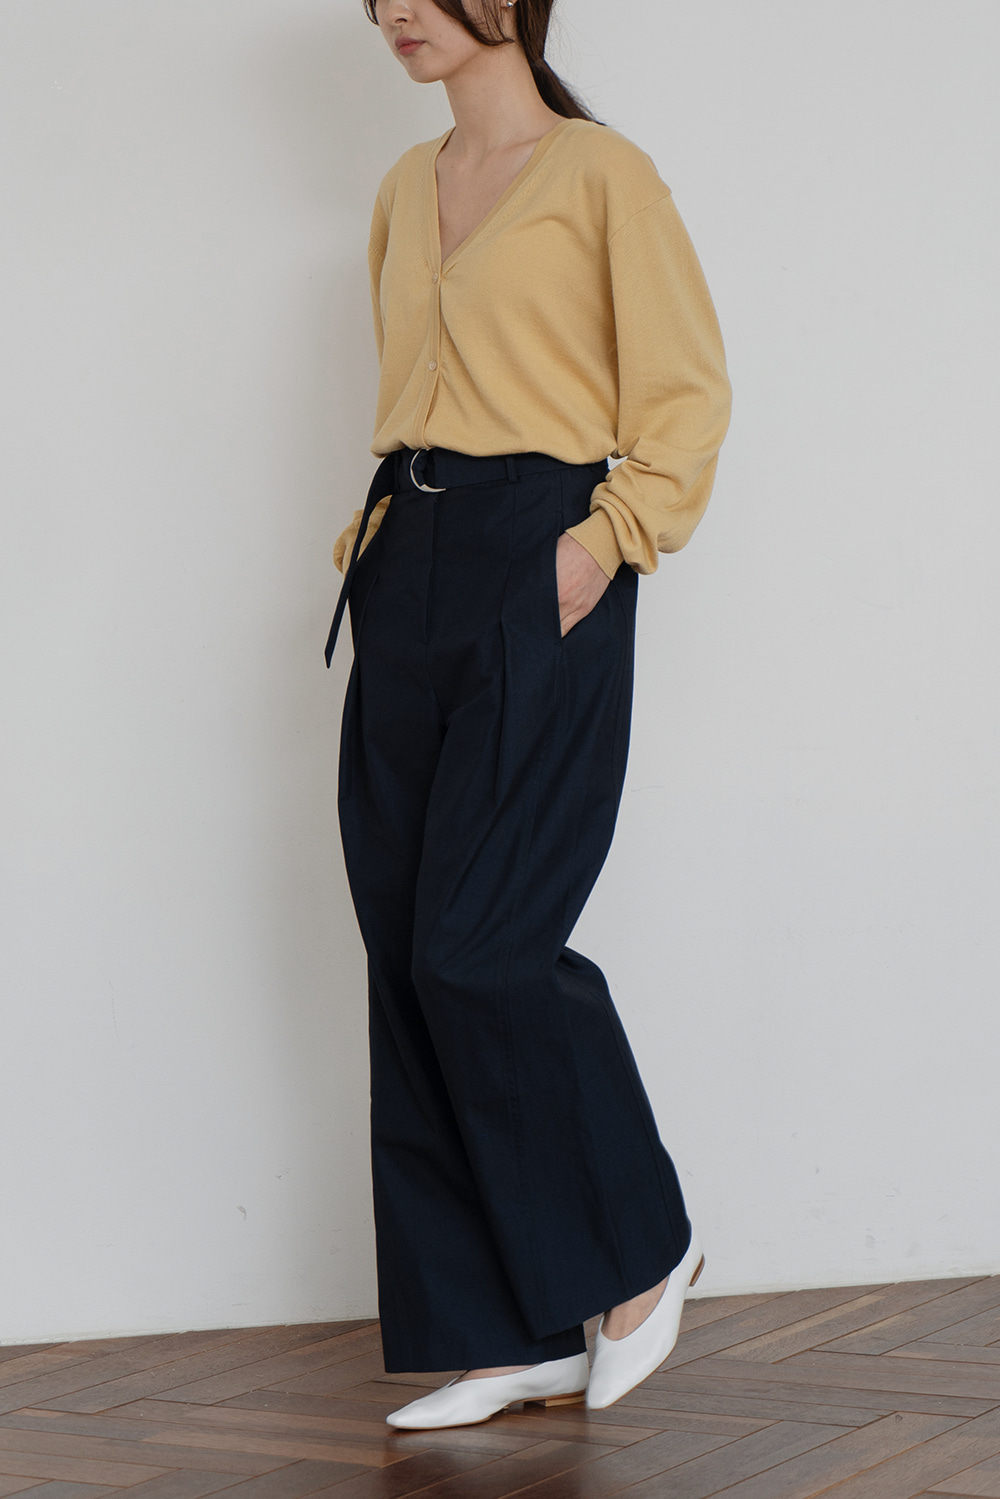 4304_Votum Belt Pants